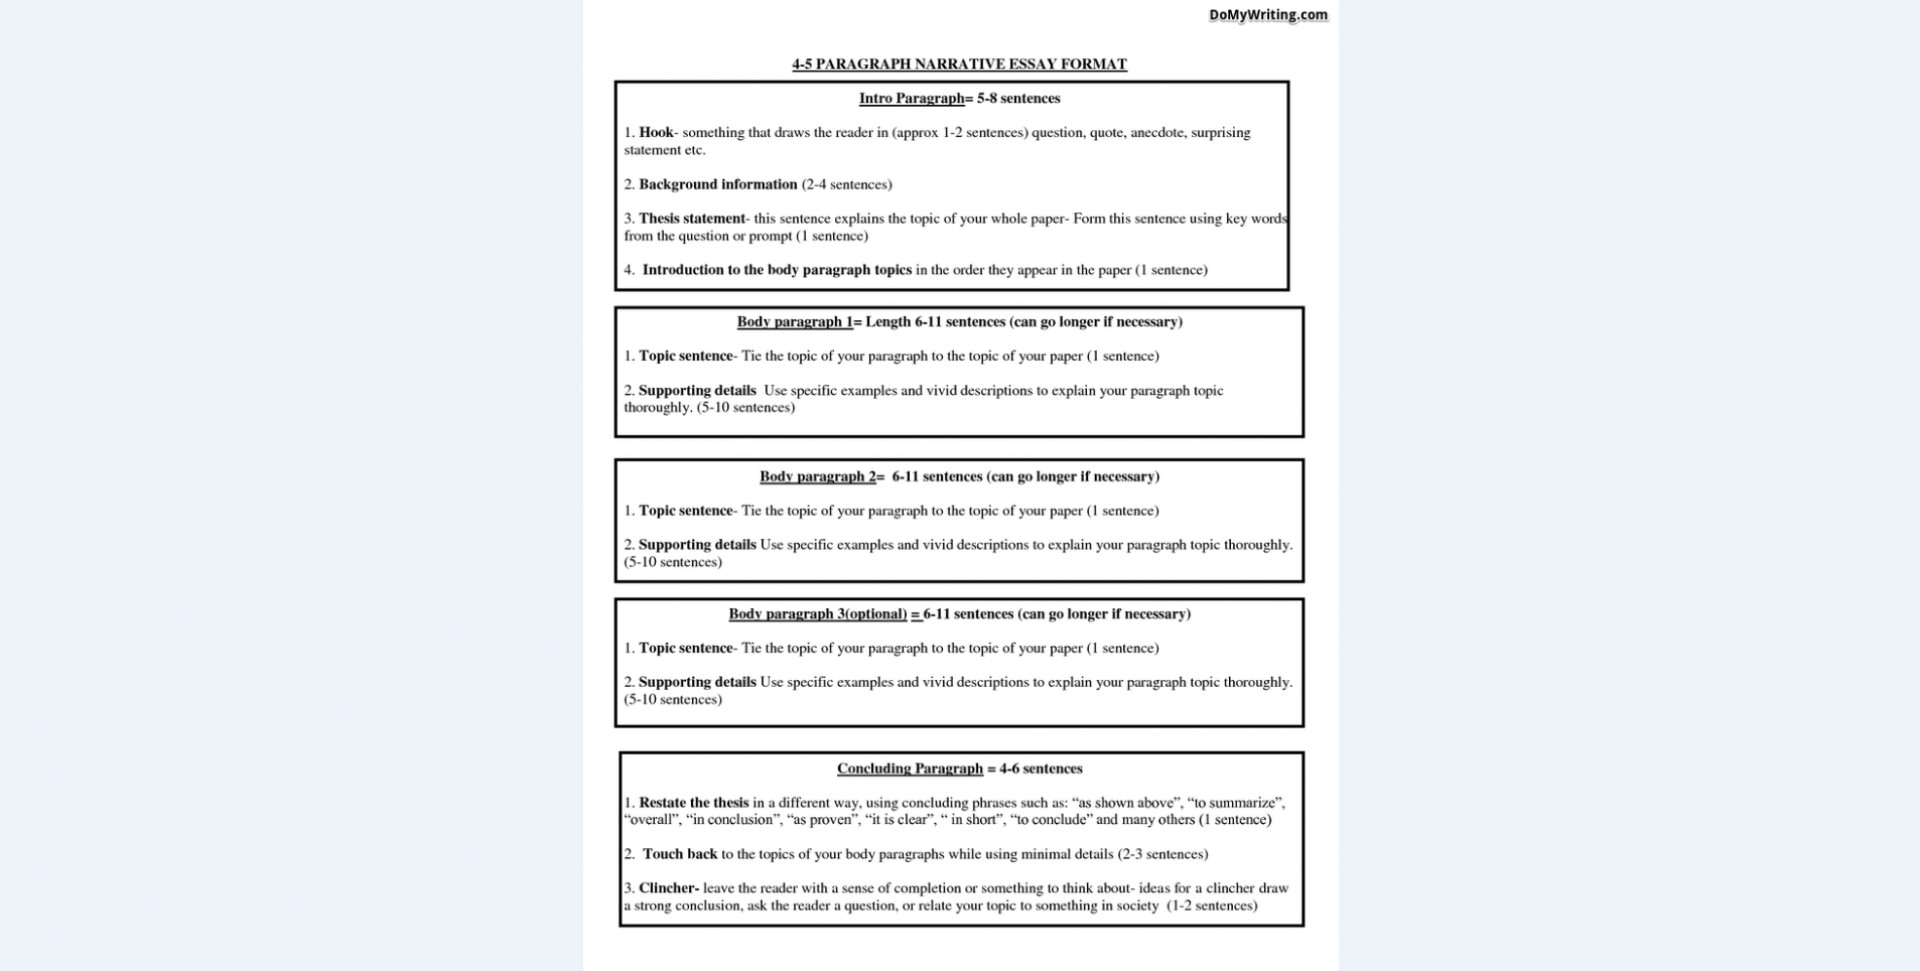 008 Narrative Essay Format Exceptional Rubric Graphic Organizer Outline 1920